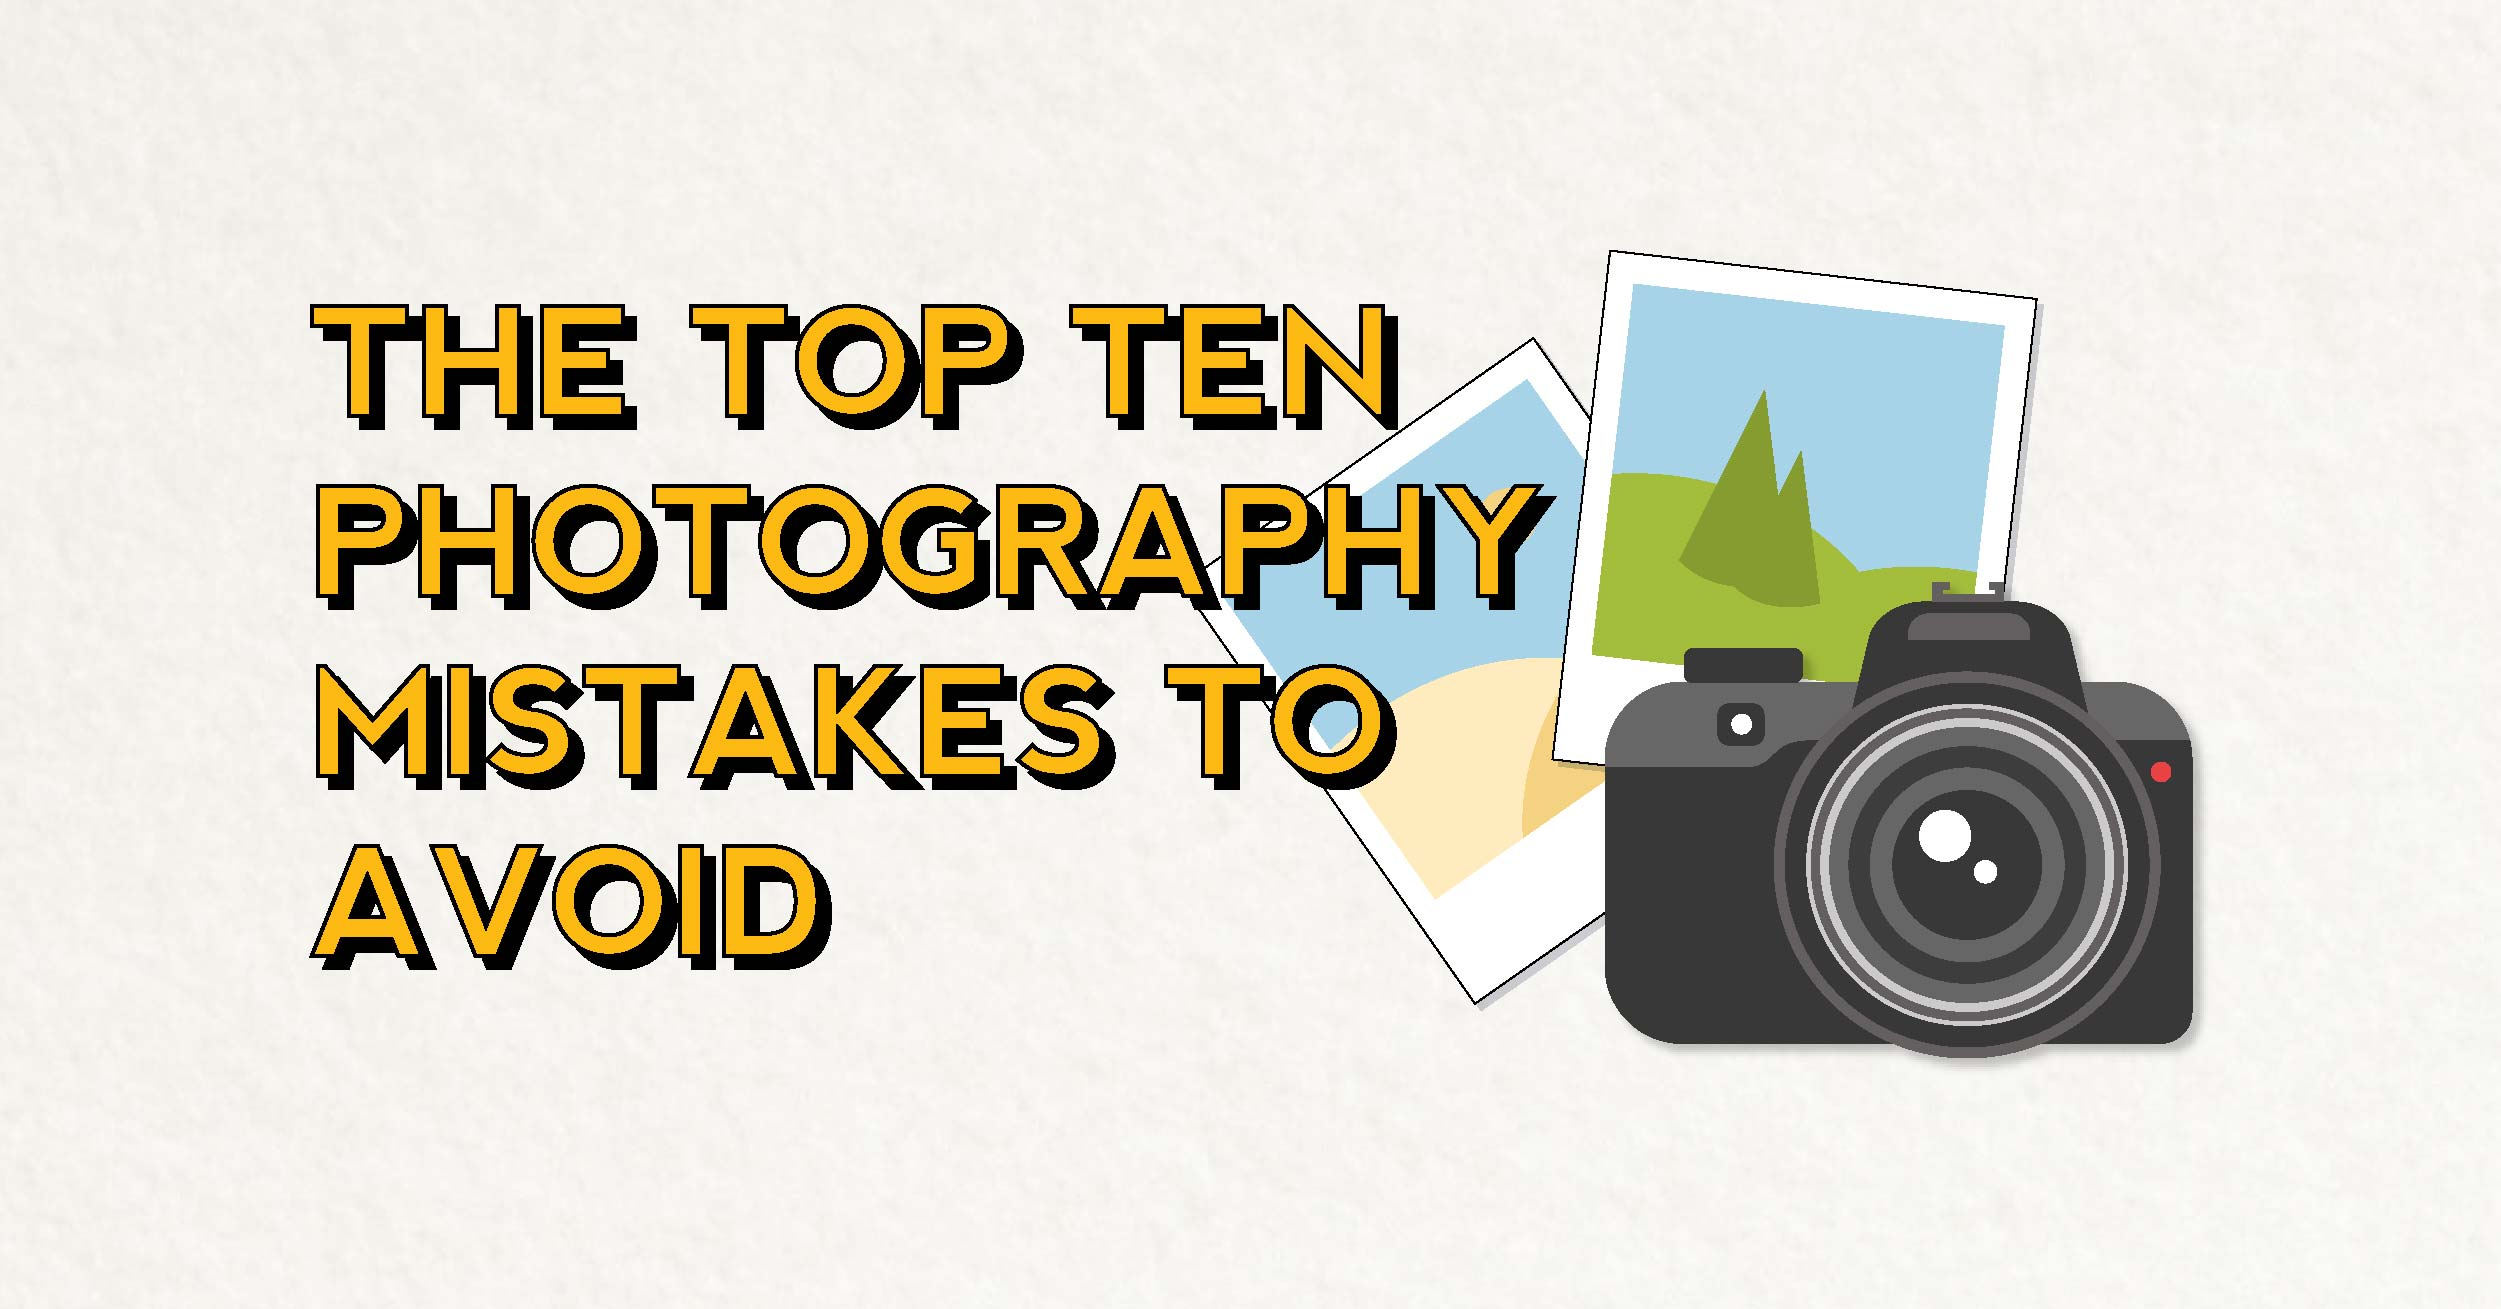 The Top Ten Photography Mistakes To Avoid